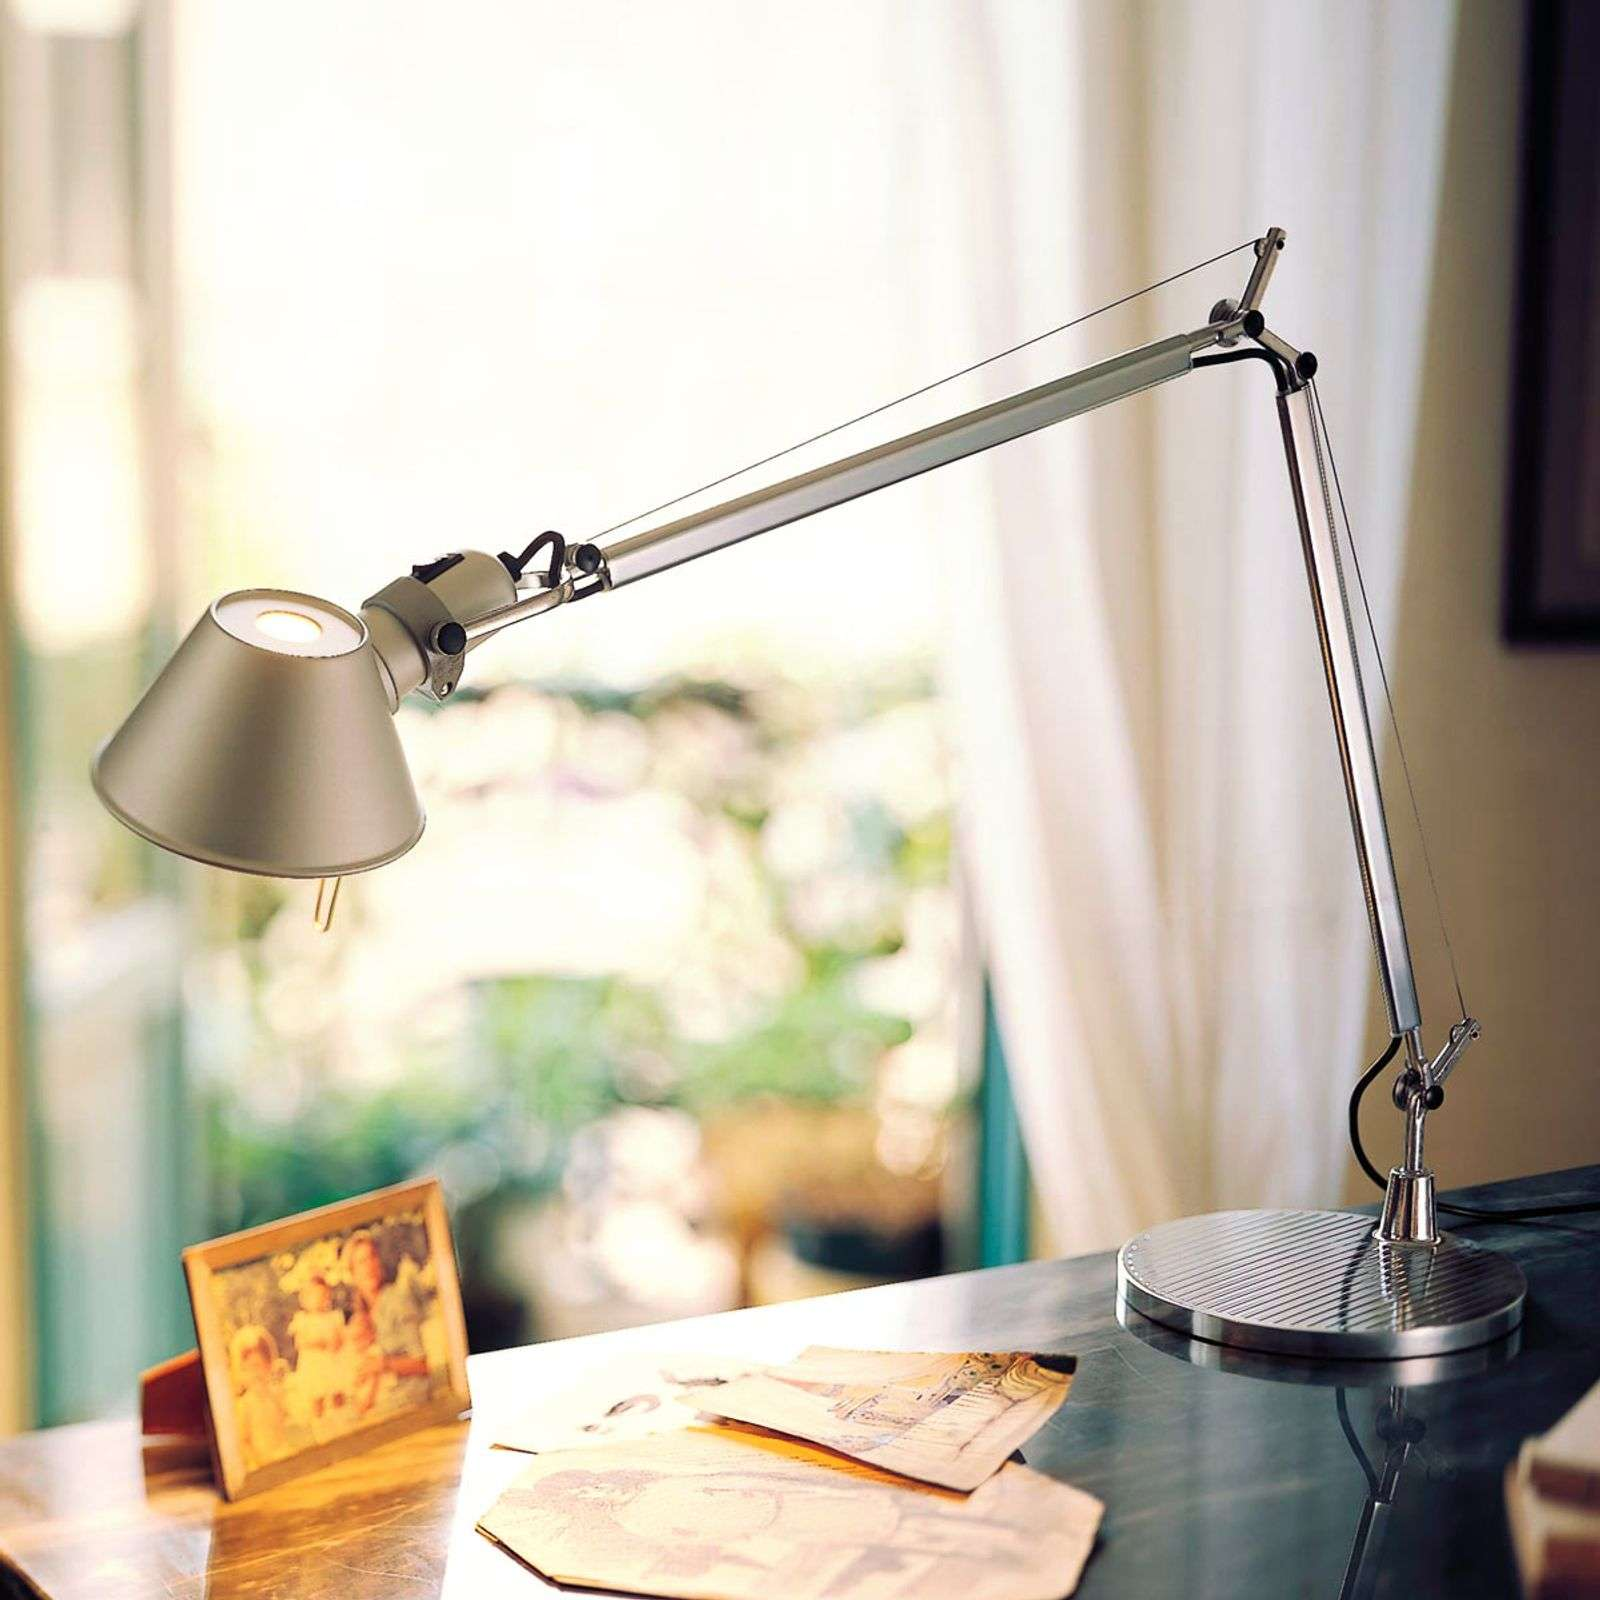 LED bureaulamp Tolomeo met dimmer